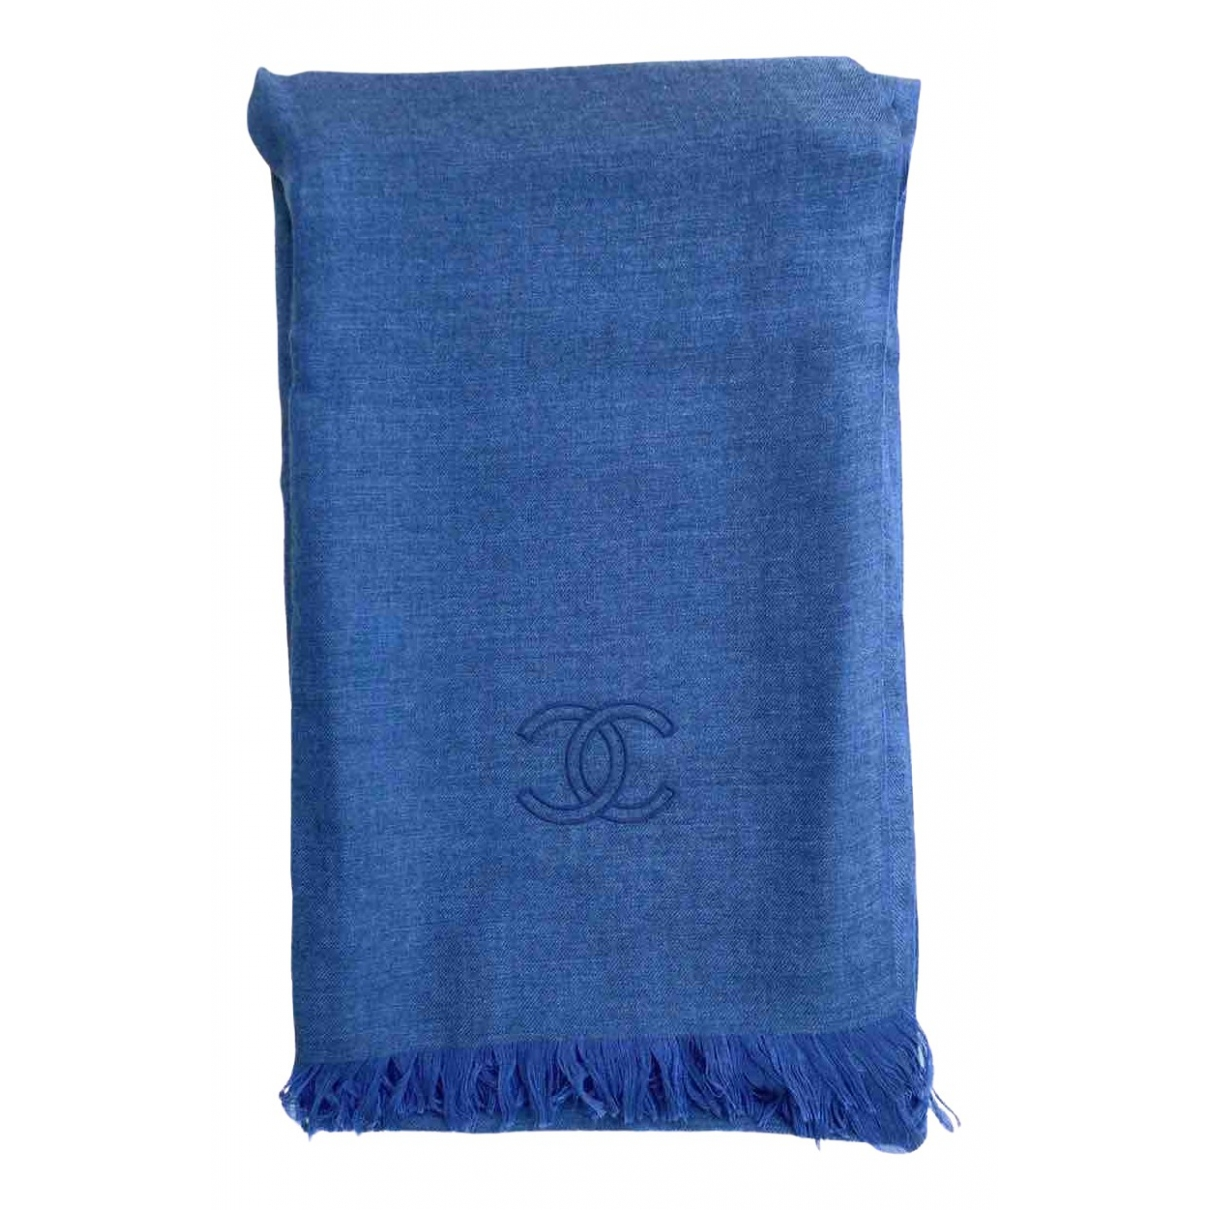 Chanel \N Blue Cashmere scarf for Women \N